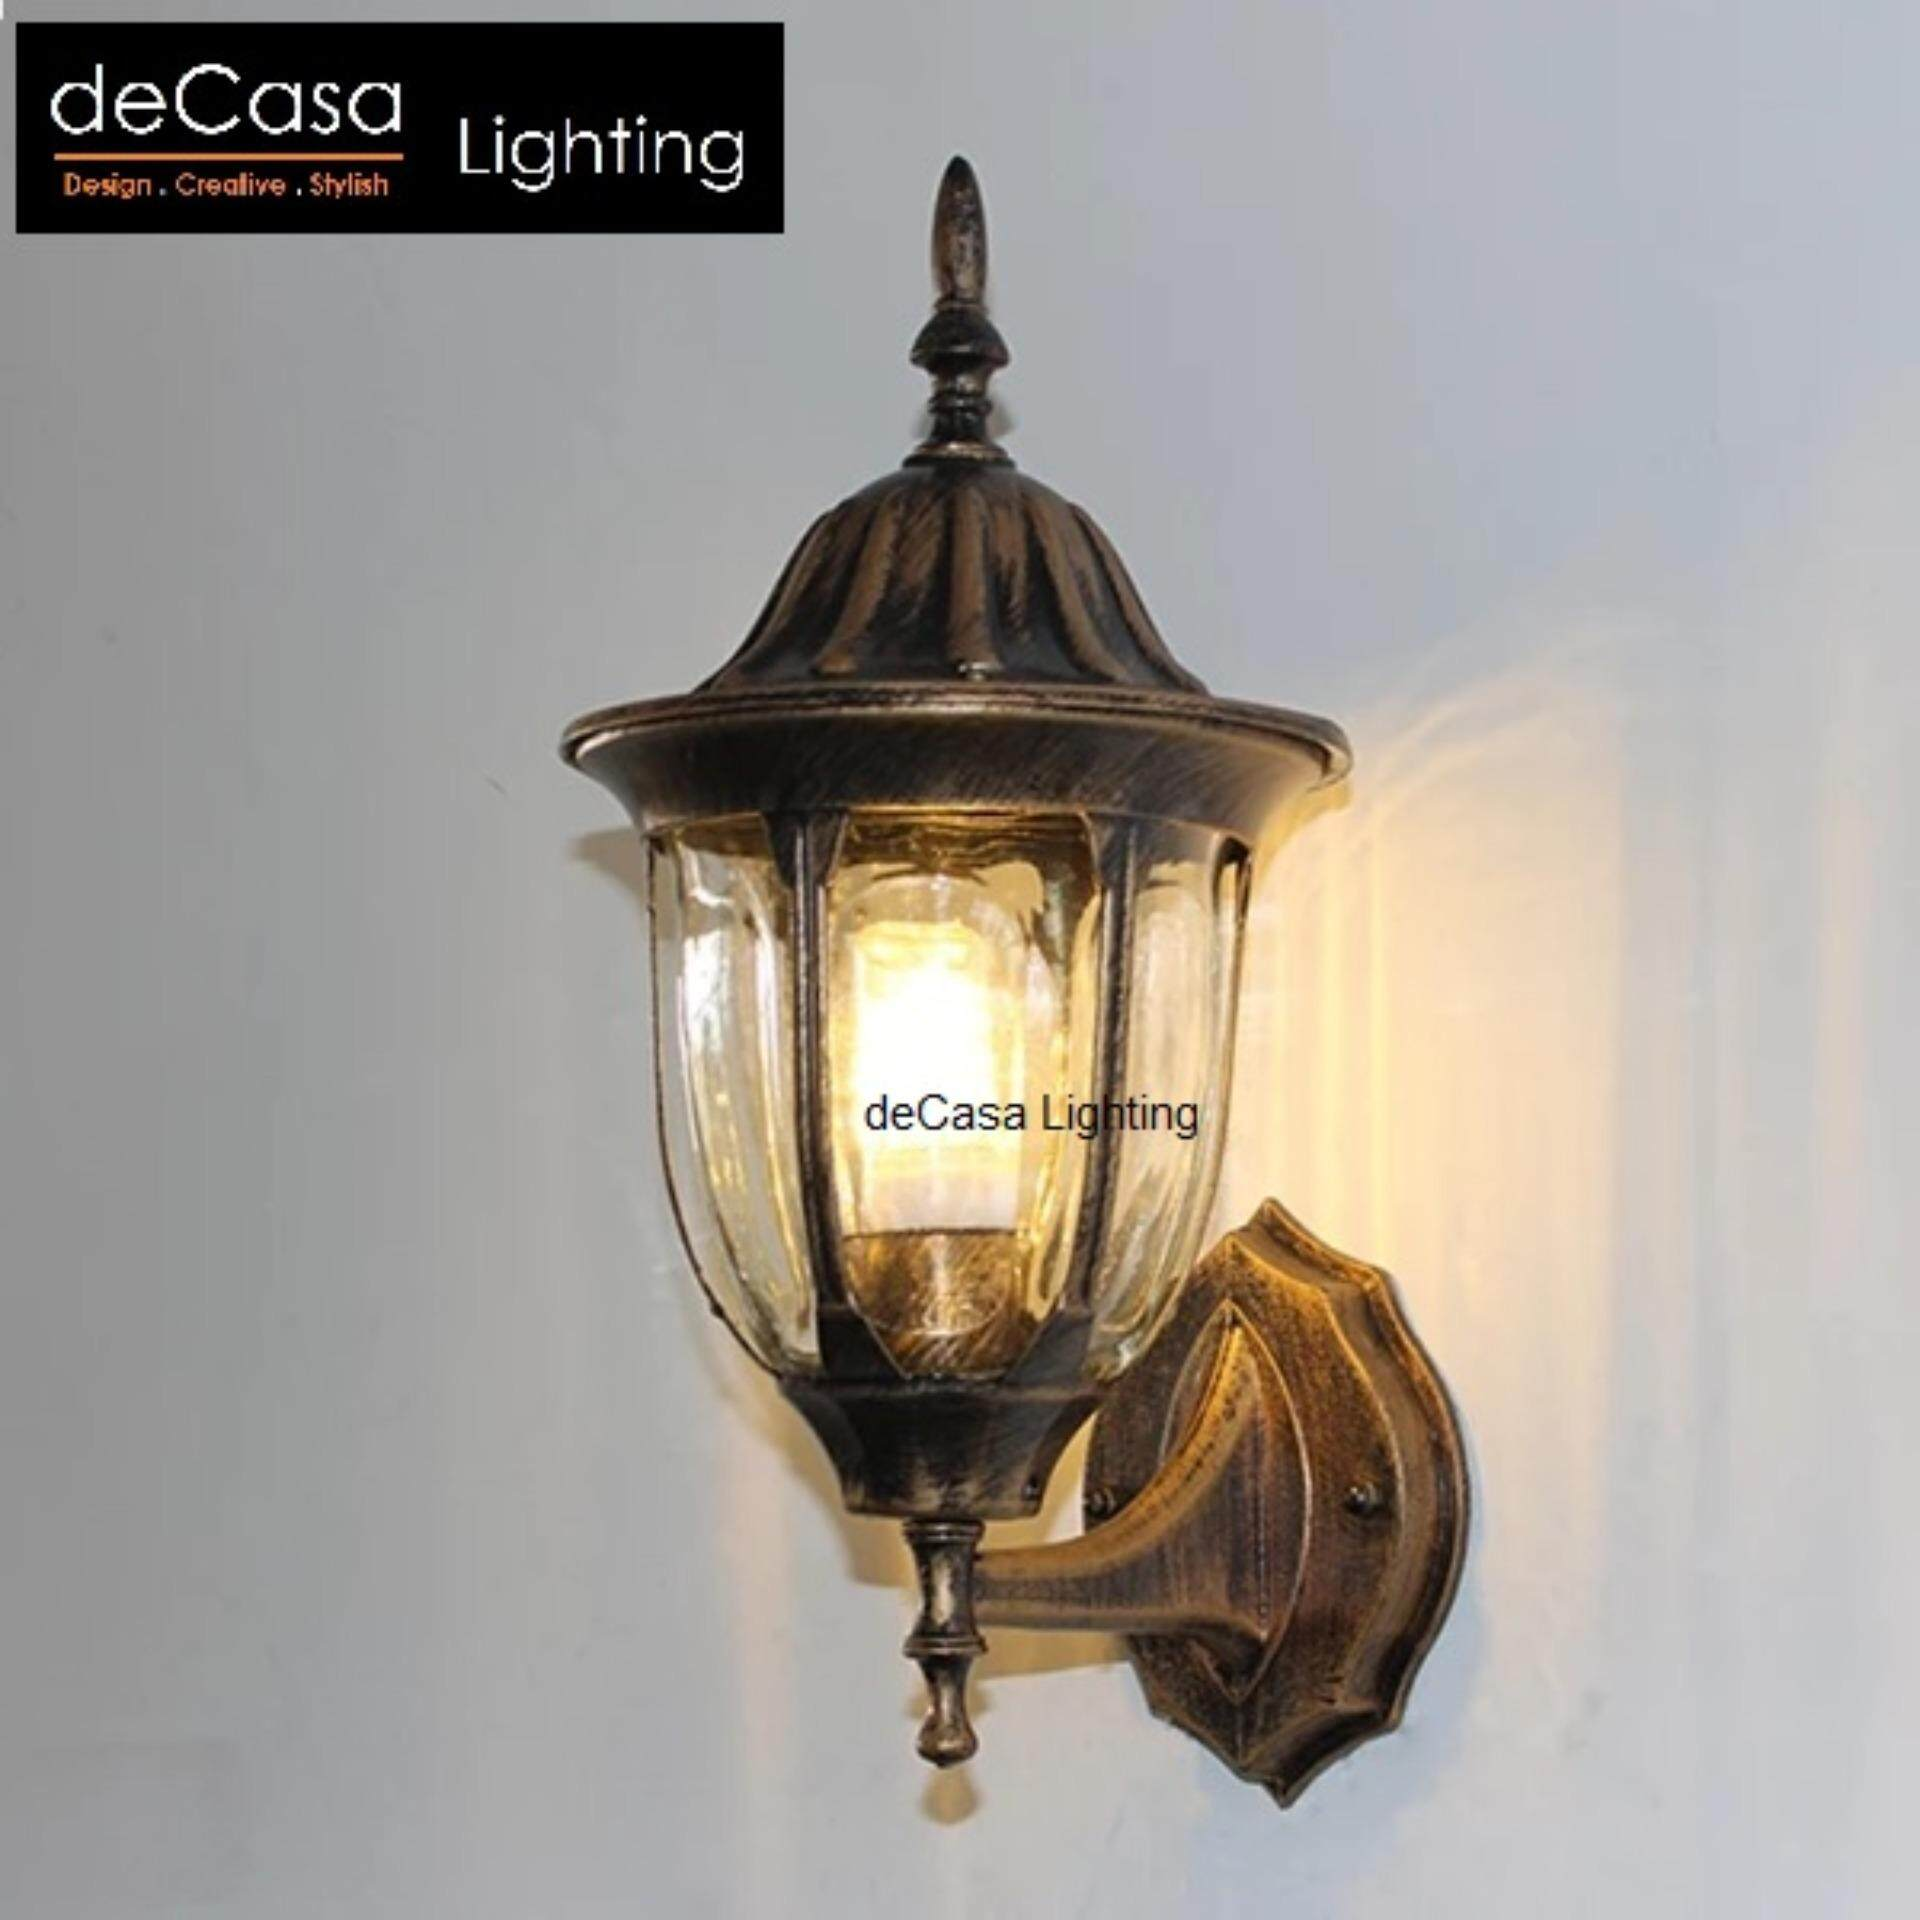 Antique Decasa Exterior Outdoor Wall Light Wall Lamp Glass Weather Proof E27 Gate Outdoor (CM-PT304-W-AB)